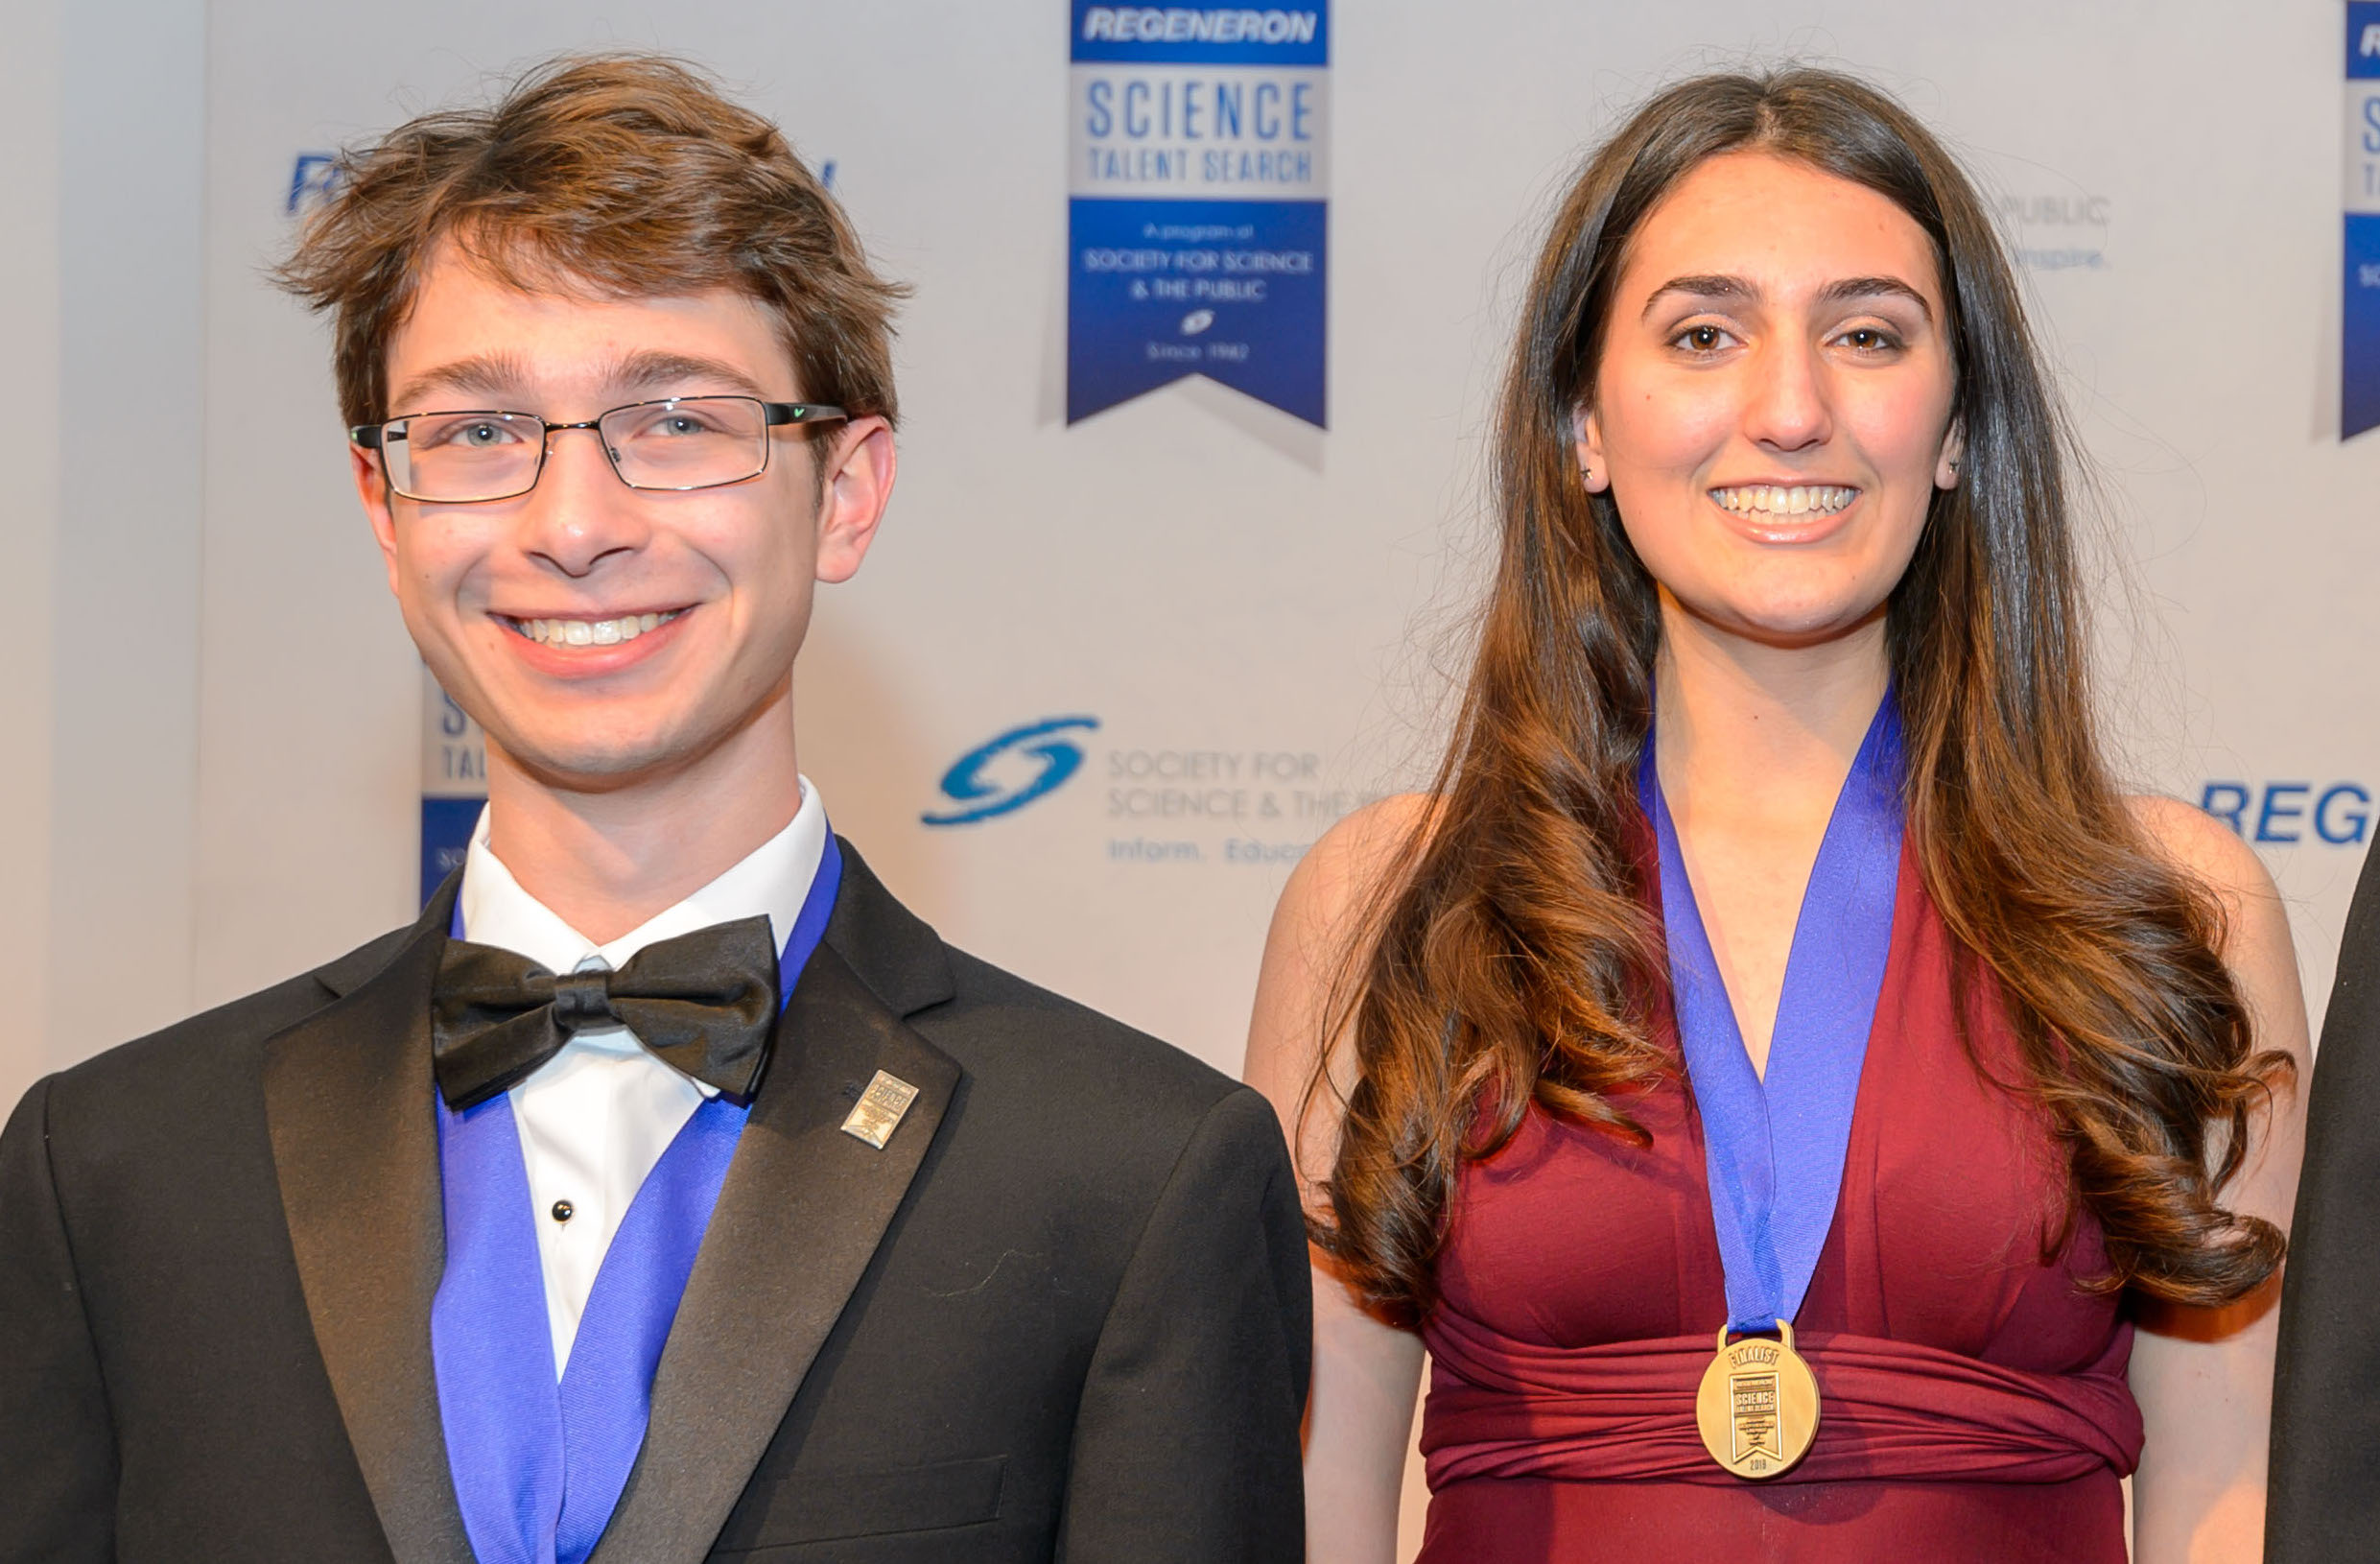 teenage boy with blond hair and wearing a bow tie standing next to teenage girl with long brown hair and red dress. both are wearing medals around their neck and smiking